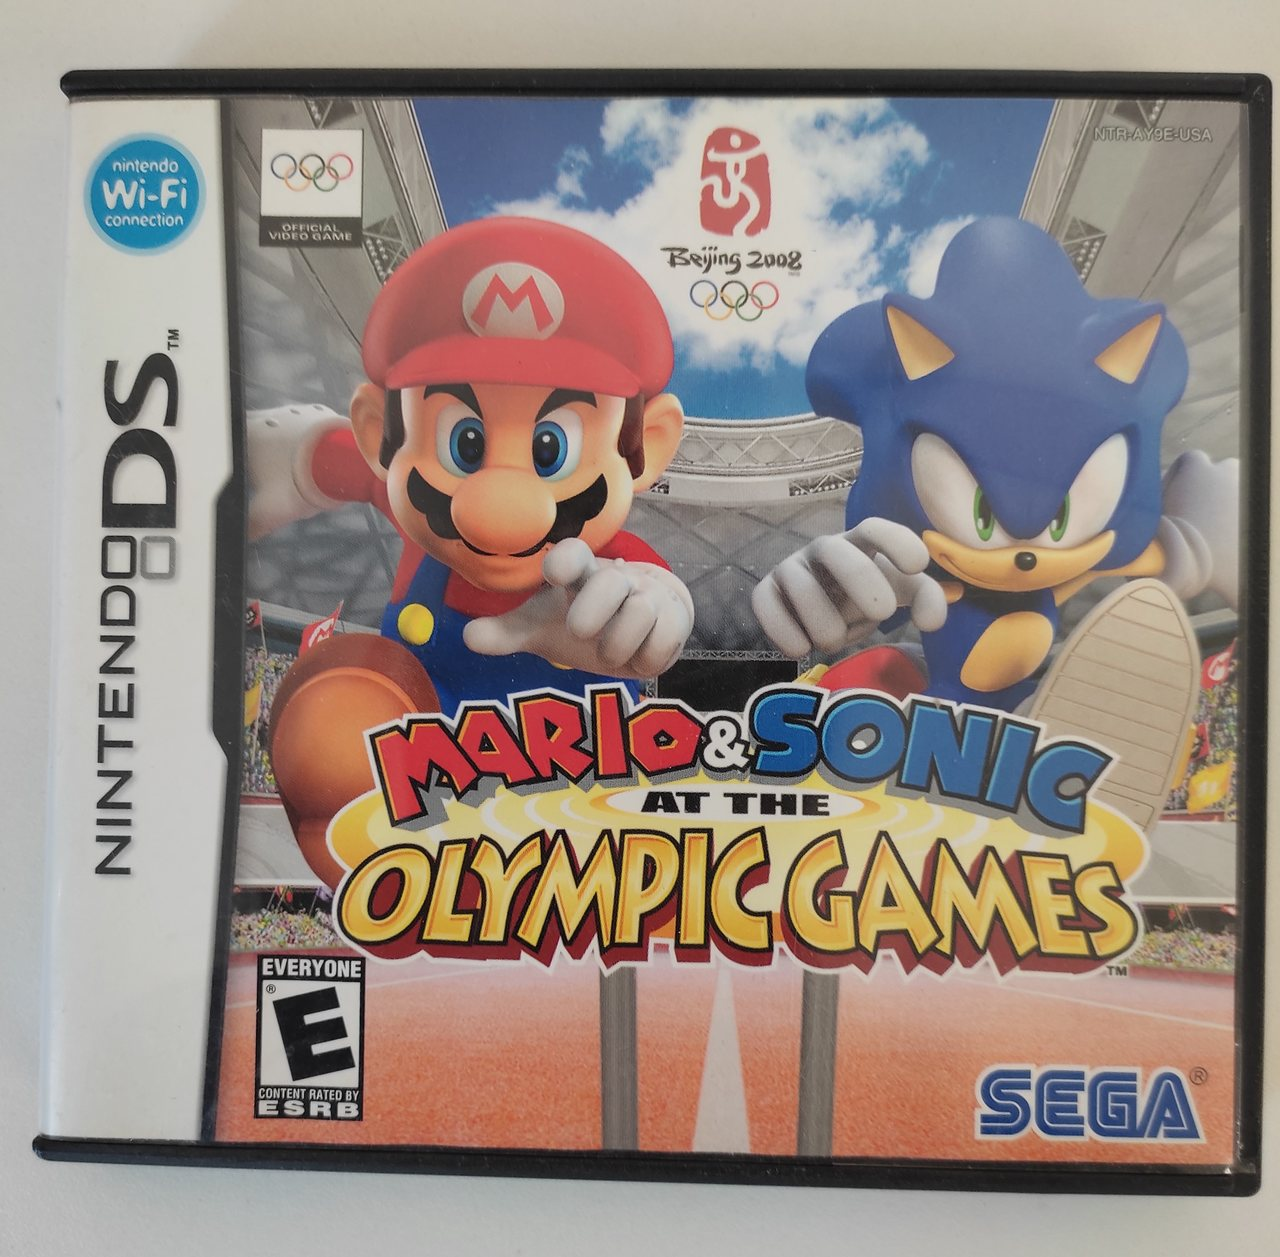 Mario & Sonic at the Olympic Games - Nintendo DS - Usado